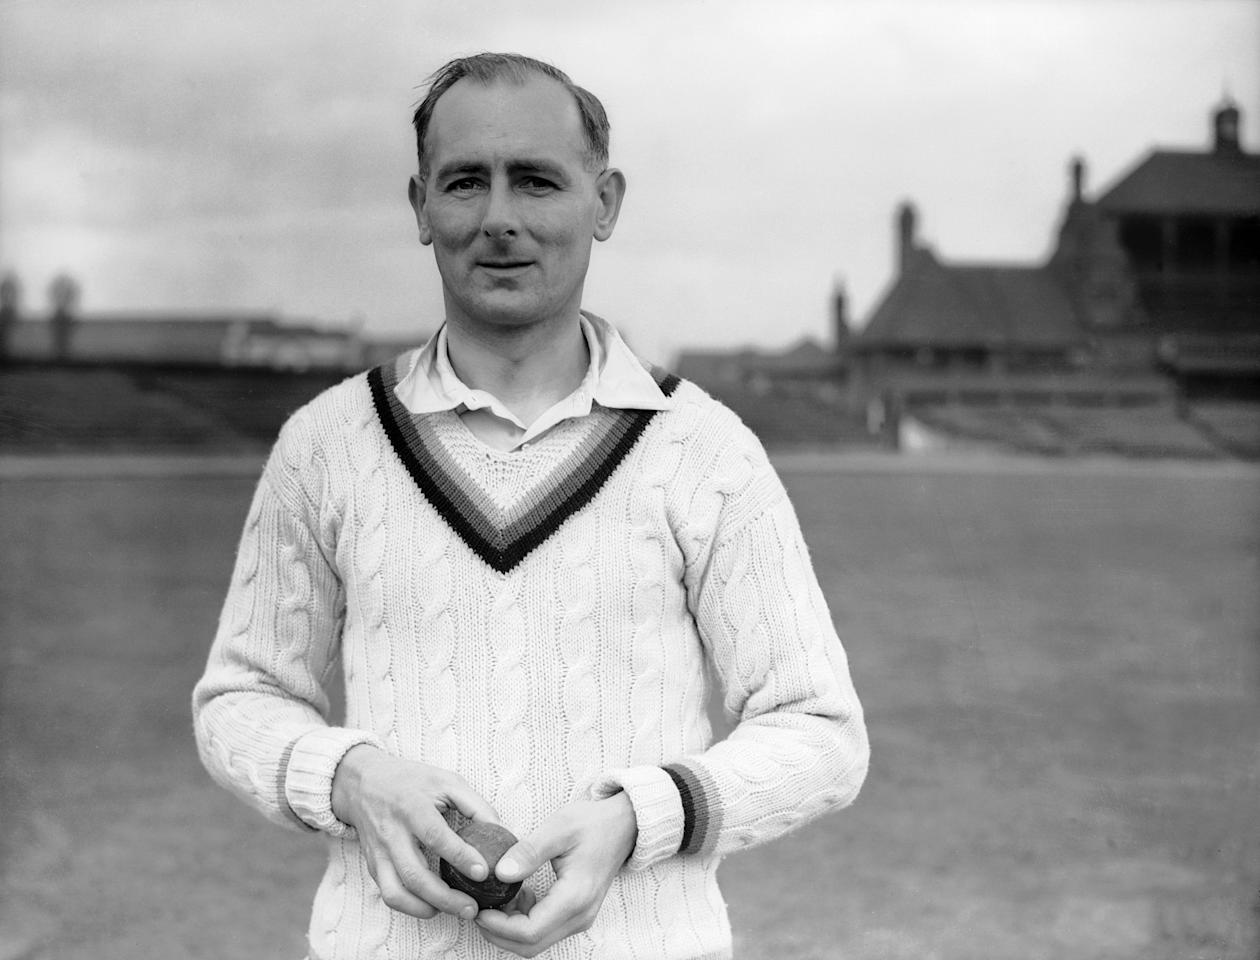 English cricketer Hedley Verity (1905 - 1943), April 1938. (Photo by Fox Photos/Hulton Archive/Getty Images)